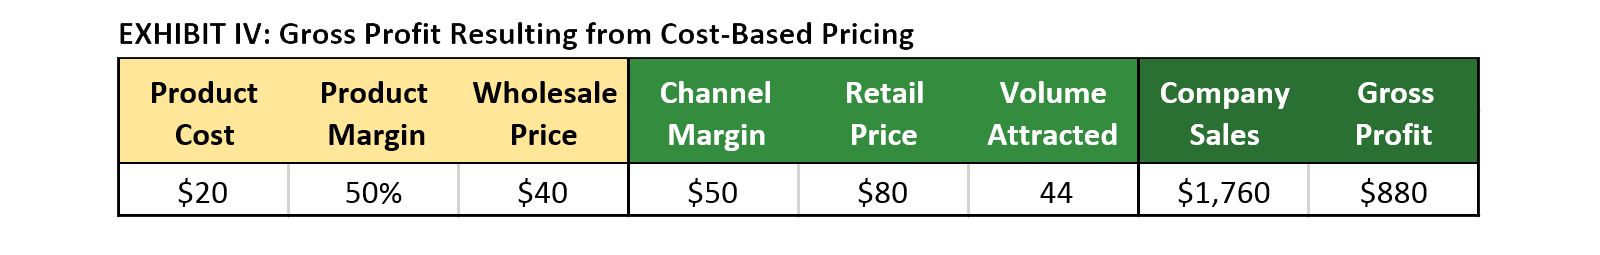 Exhibit IV: Gross Profit Resulting from Cost-Based Pricing